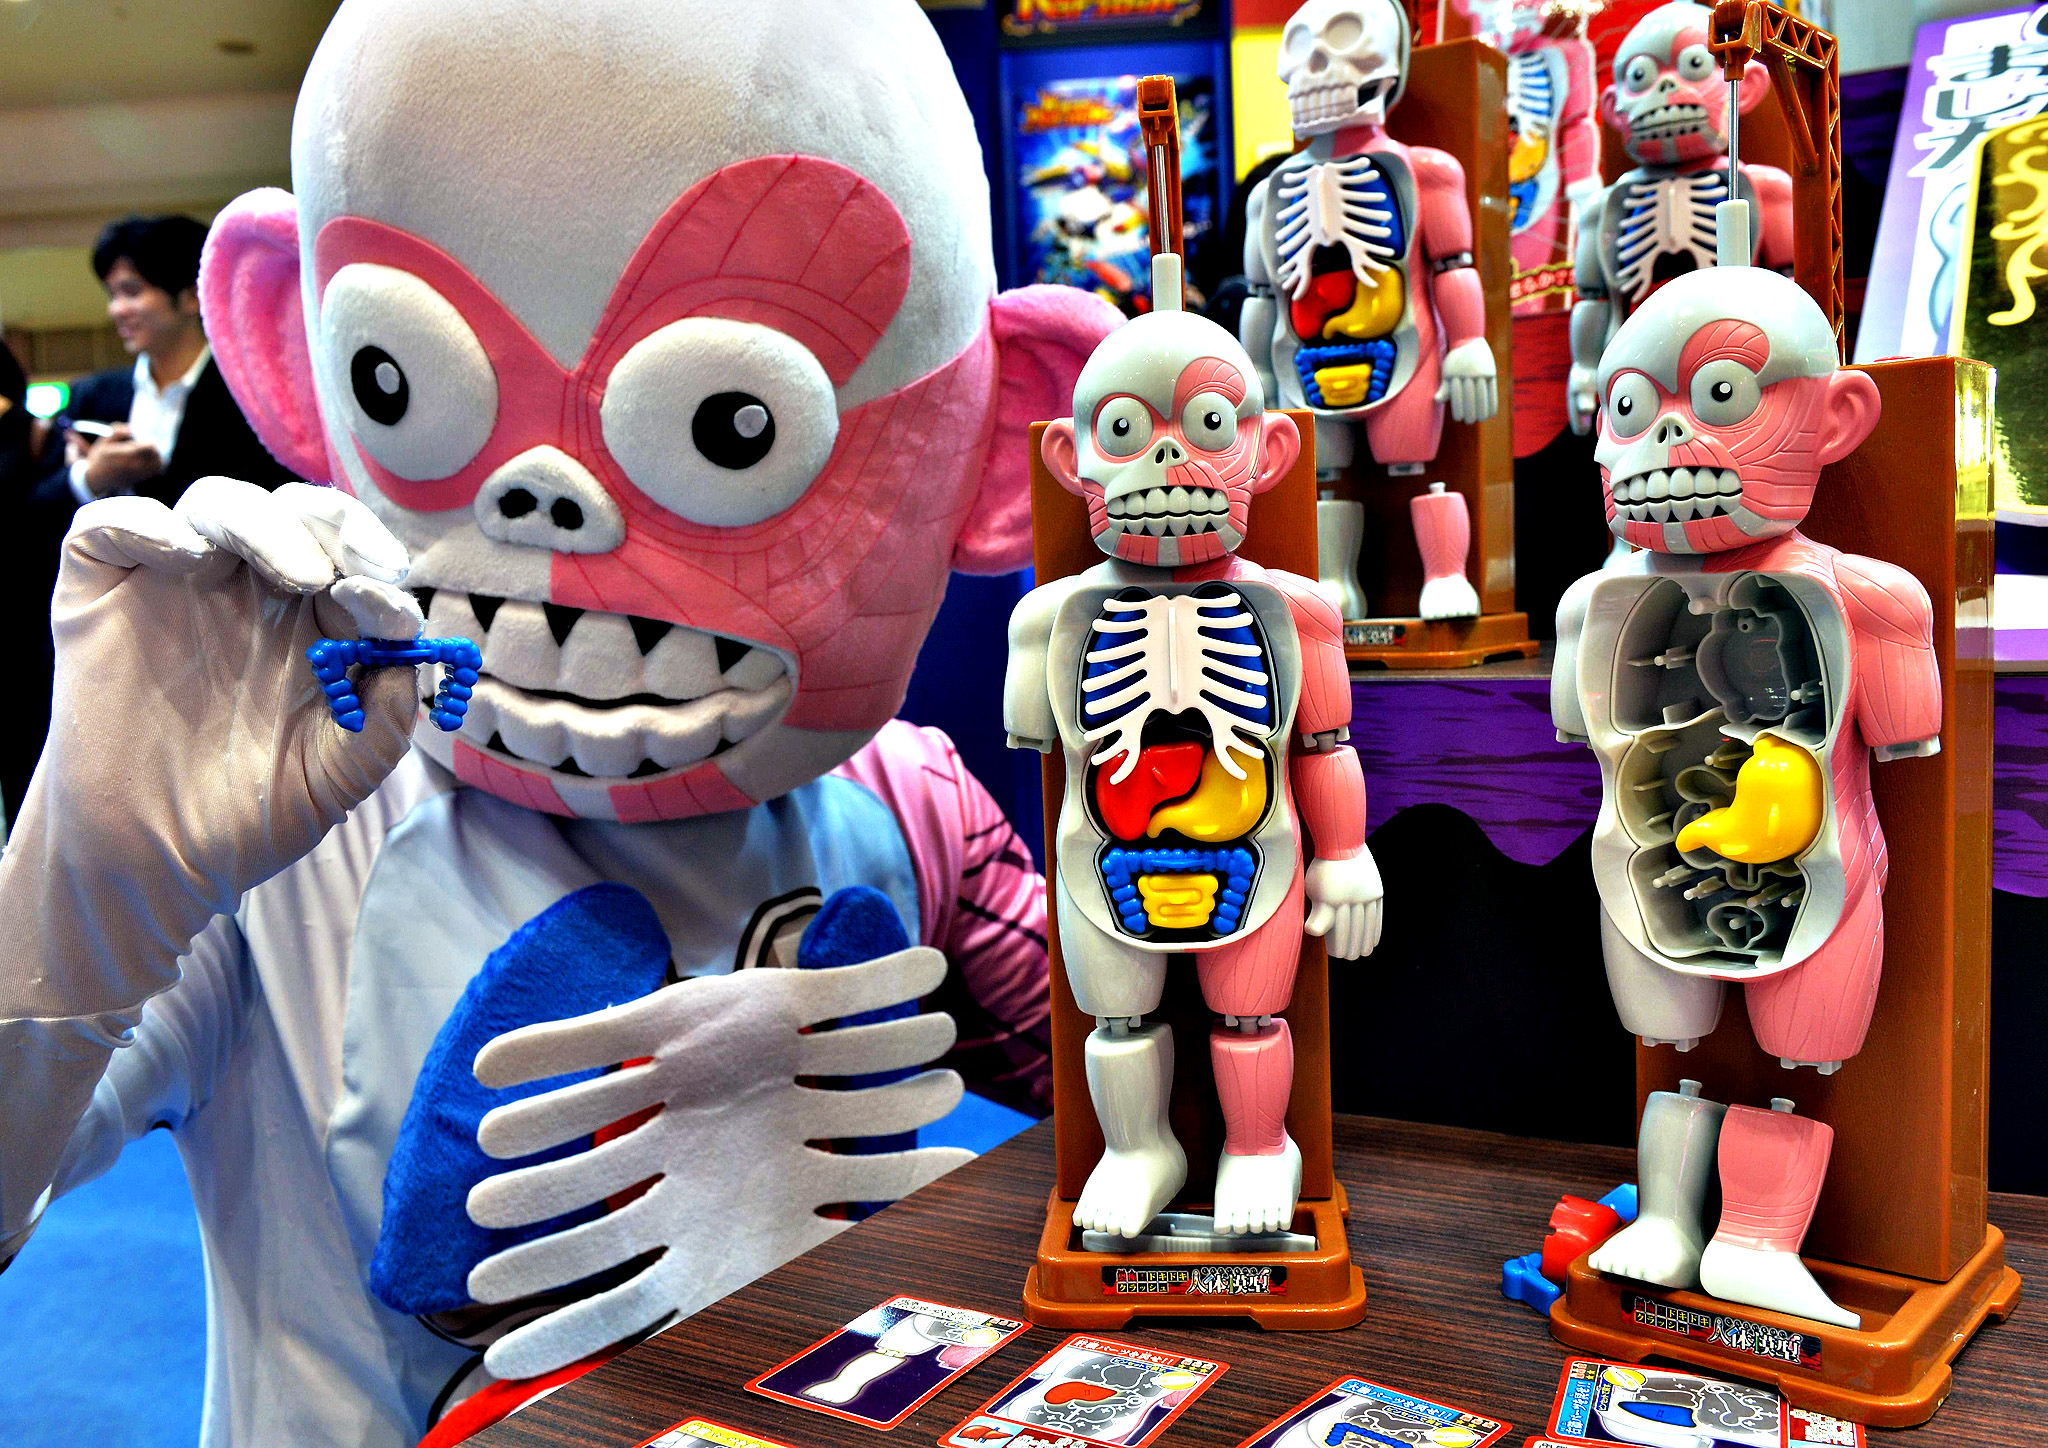 """An employee of Japan's toy maker Megahouse displays the new puzzle of human parts and organs """"Jintai-mokei"""" (model of the human anatomy) at the annual Tokyo Toy Show in Tokyo"""